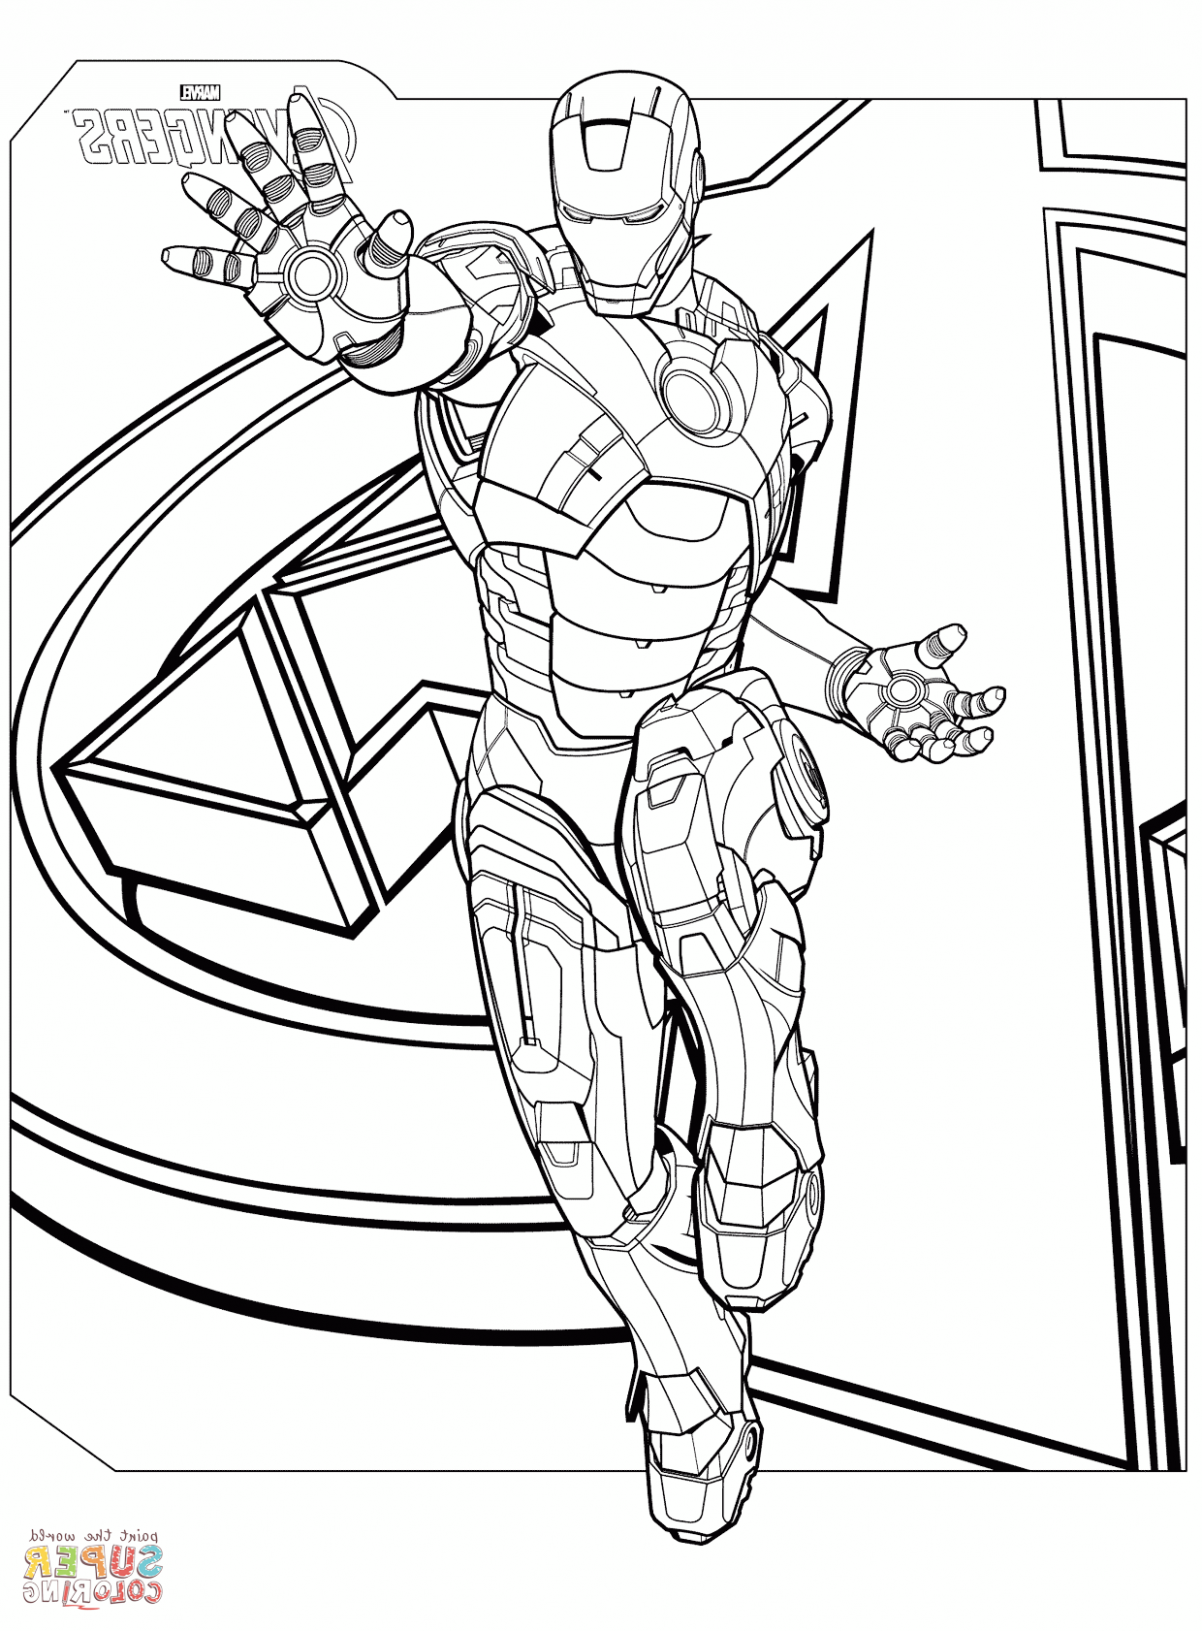 Five Things Nobody Told You About Coloring Pages Avengers Coloring Avengers Coloring Pages Avengers Coloring Coloring Pages